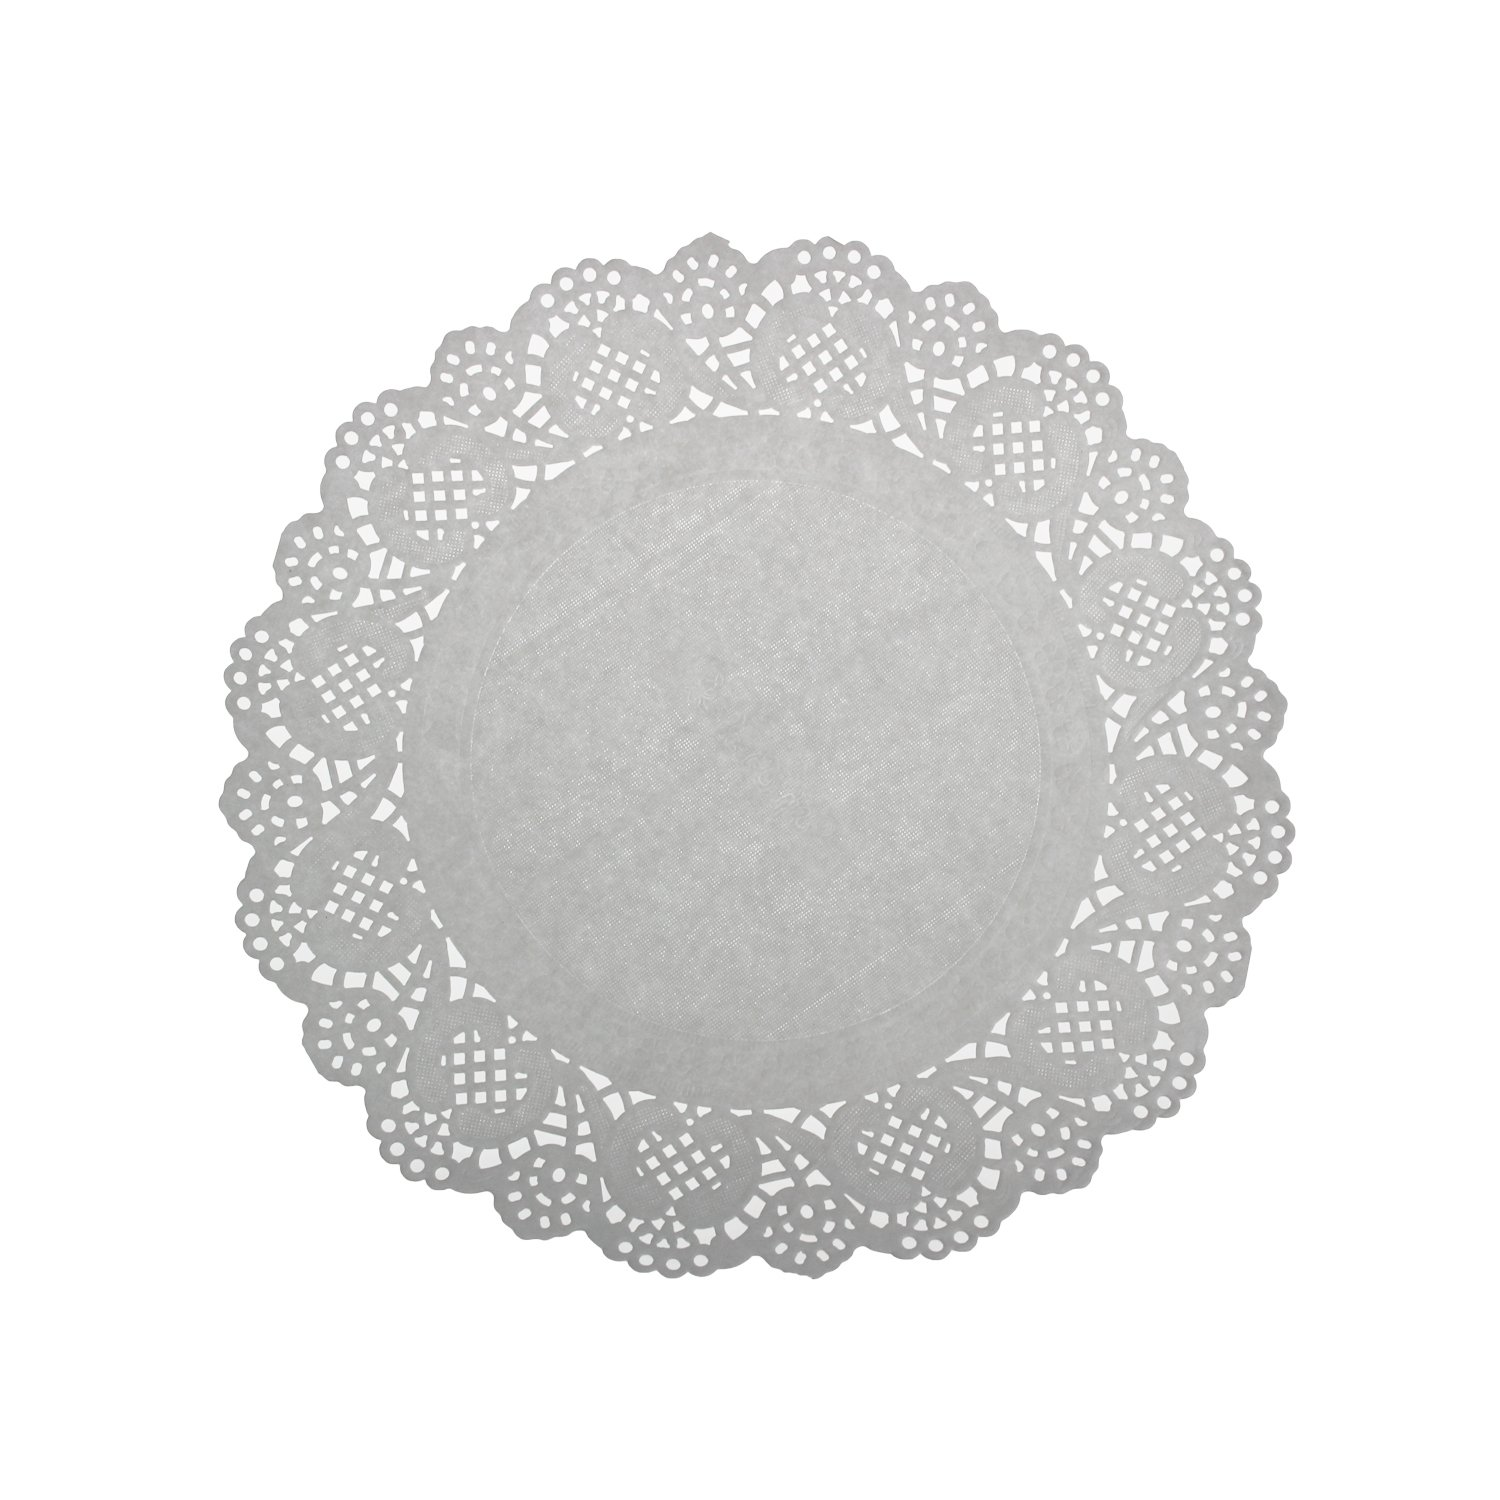 Cheap 10 Inch Round Paper Doilies Find 10 Inch Round Paper Doilies